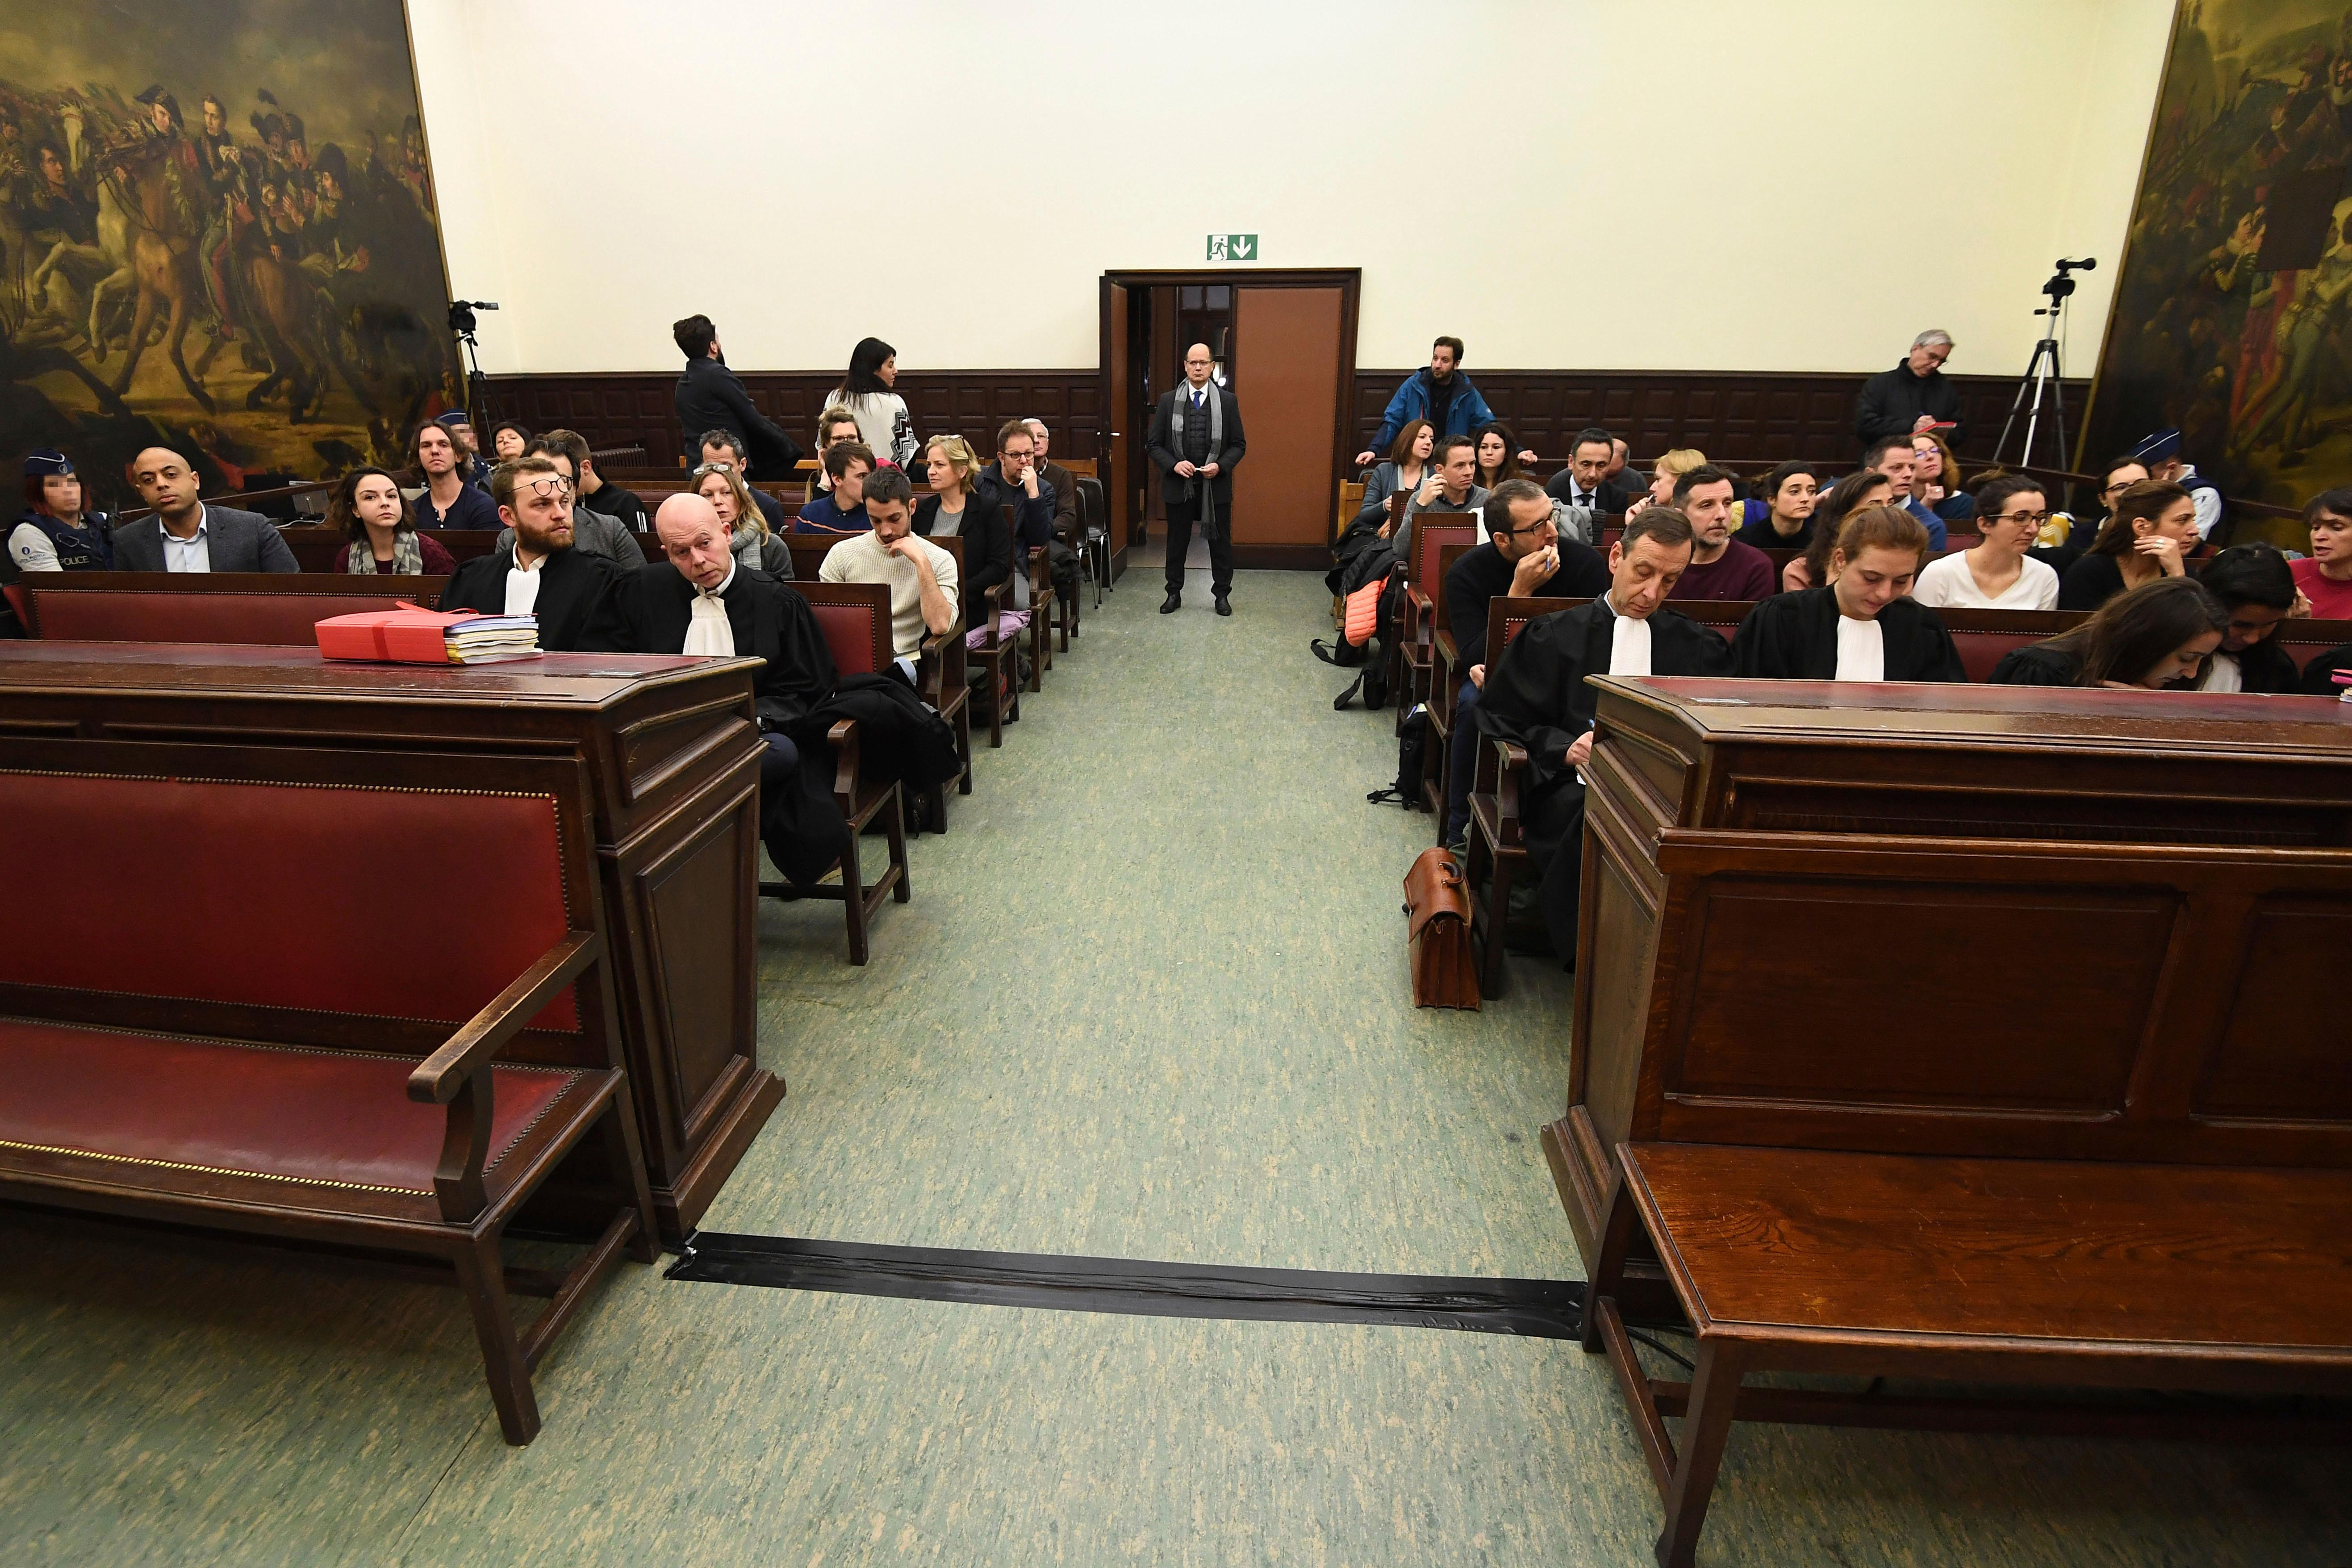 A general view of the courtroom prior to the trial of Salah Abdeslam at the Brussels Justice Palace in Brussels on Monday, Feb. 5, 2018. Salah Abdeslam and Soufiane Ayari face trial for taking part in a shooting incident in Vorst, Belgium on March 15, 2016. The incident took place when six members of a Franco-Belgian research team investigating the attacks in Paris were conducting a search in an allegedly empty safe house of the terrorists and were attacked. (Emmanuel Dunand, Pool Photo via AP)